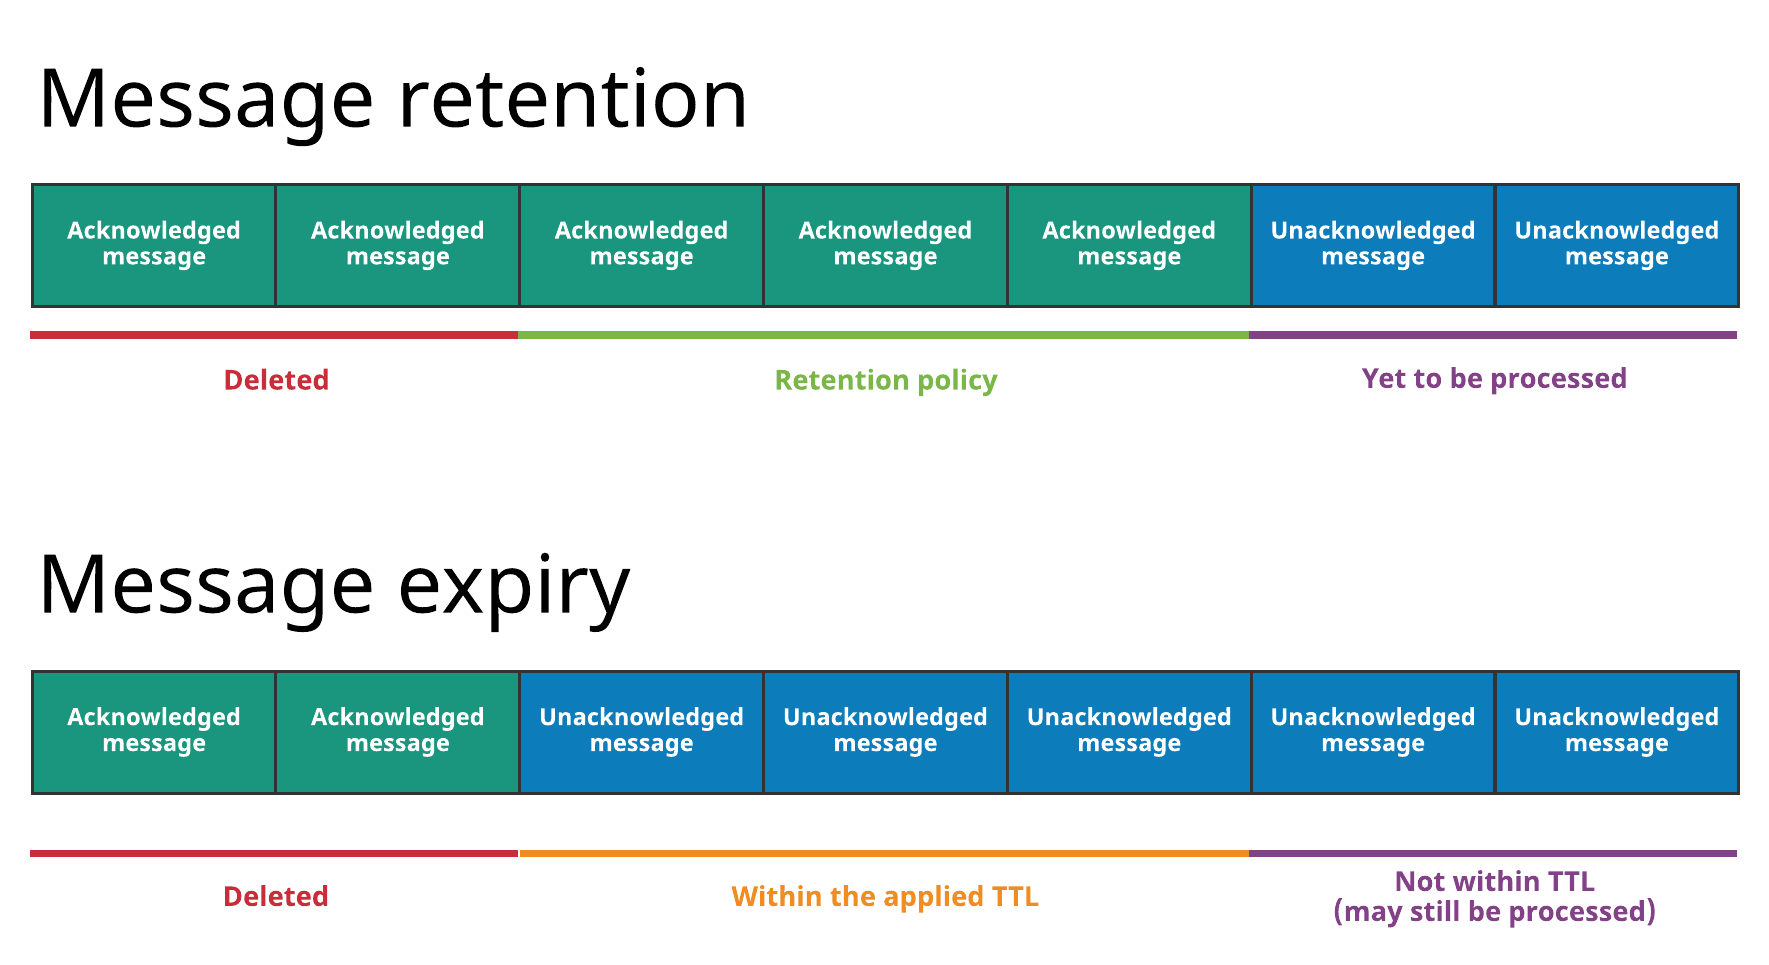 Message retention and expiry